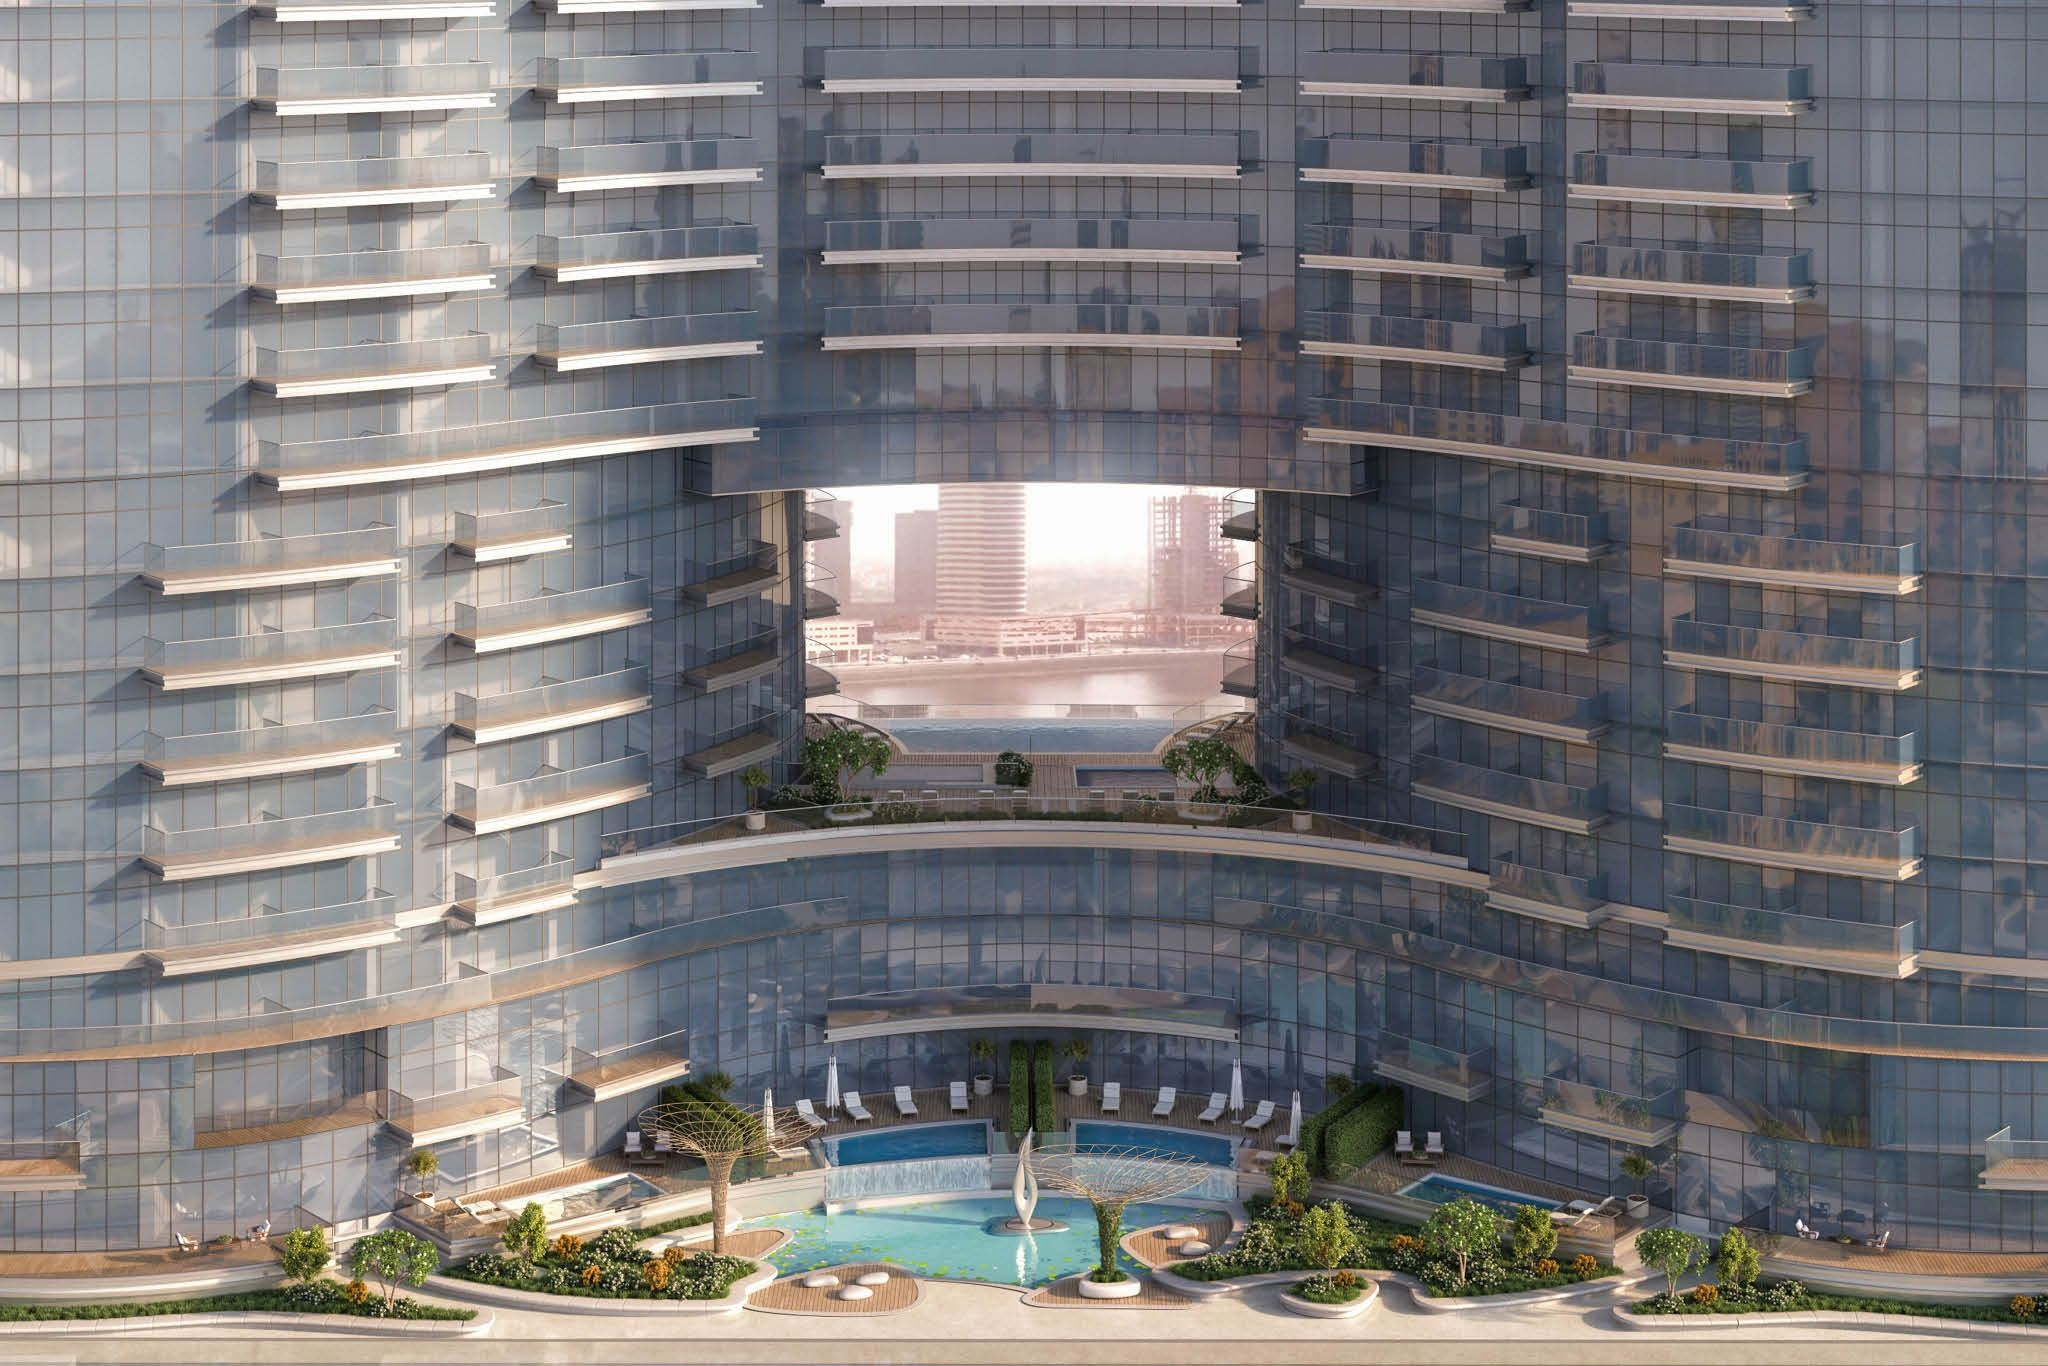 Shapoorji Pallonji International